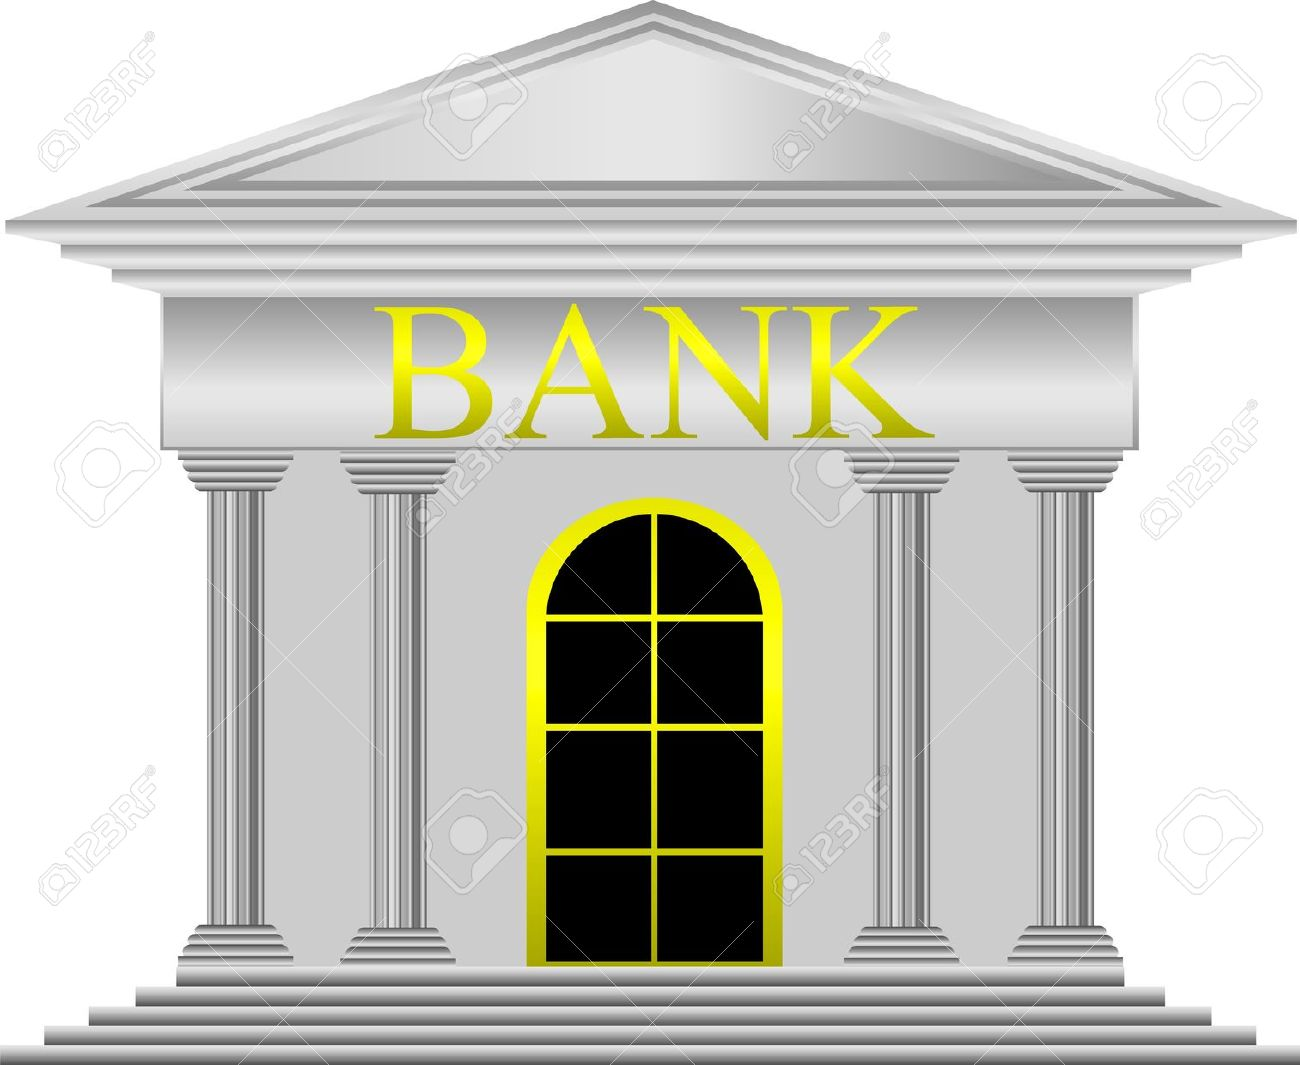 Banks clipart #12, Download drawings